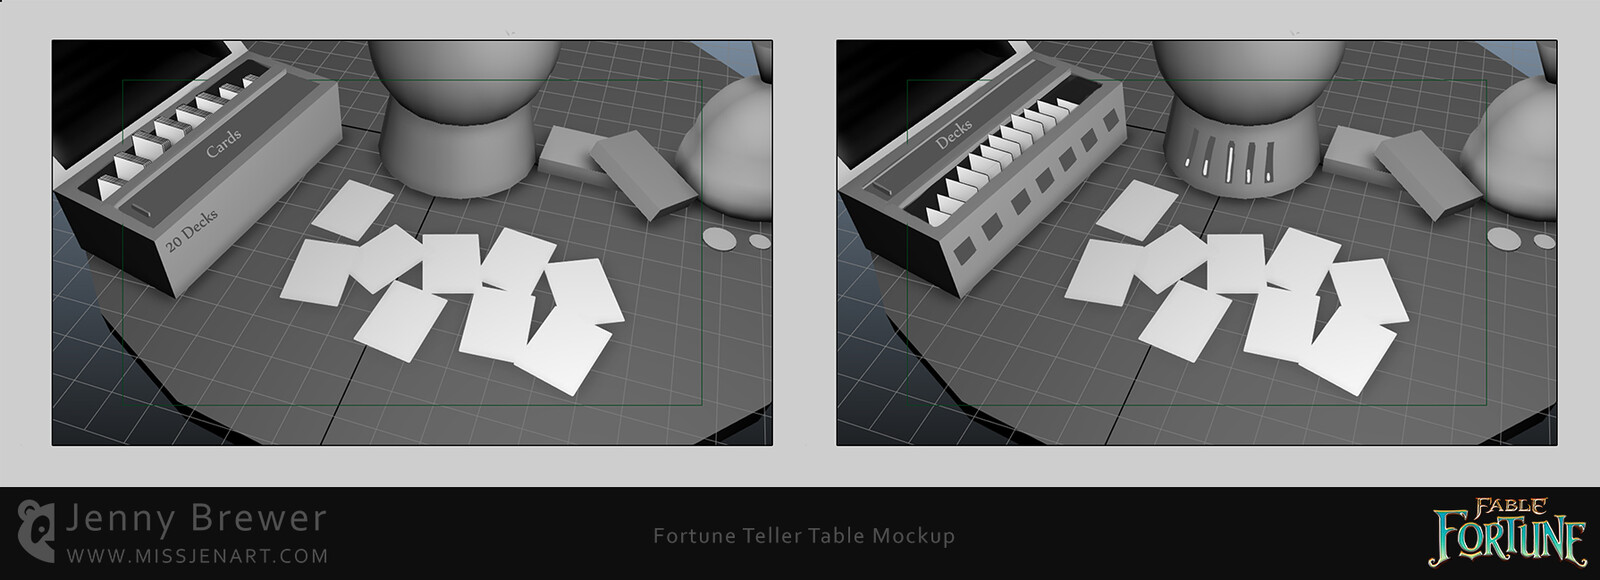 I created some 3D white boxes using Autodesk Maya to prototype my ideas along with some rough animations to help illustrate how to give some magic energy in to the cards!